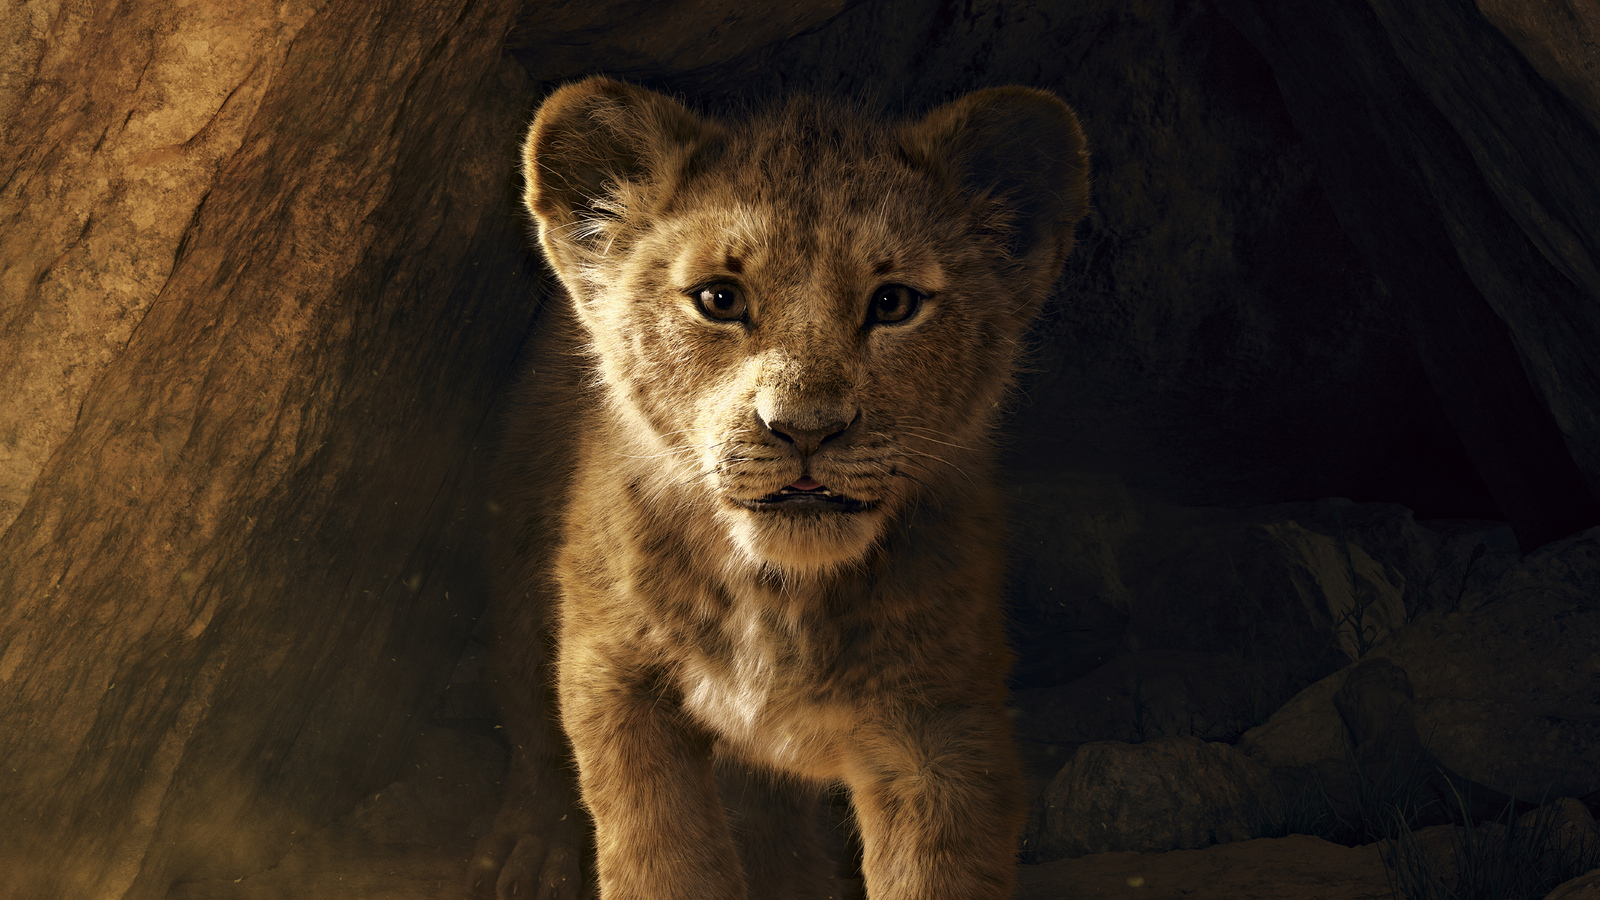 the-lion-king-2019-8k-br.jpg